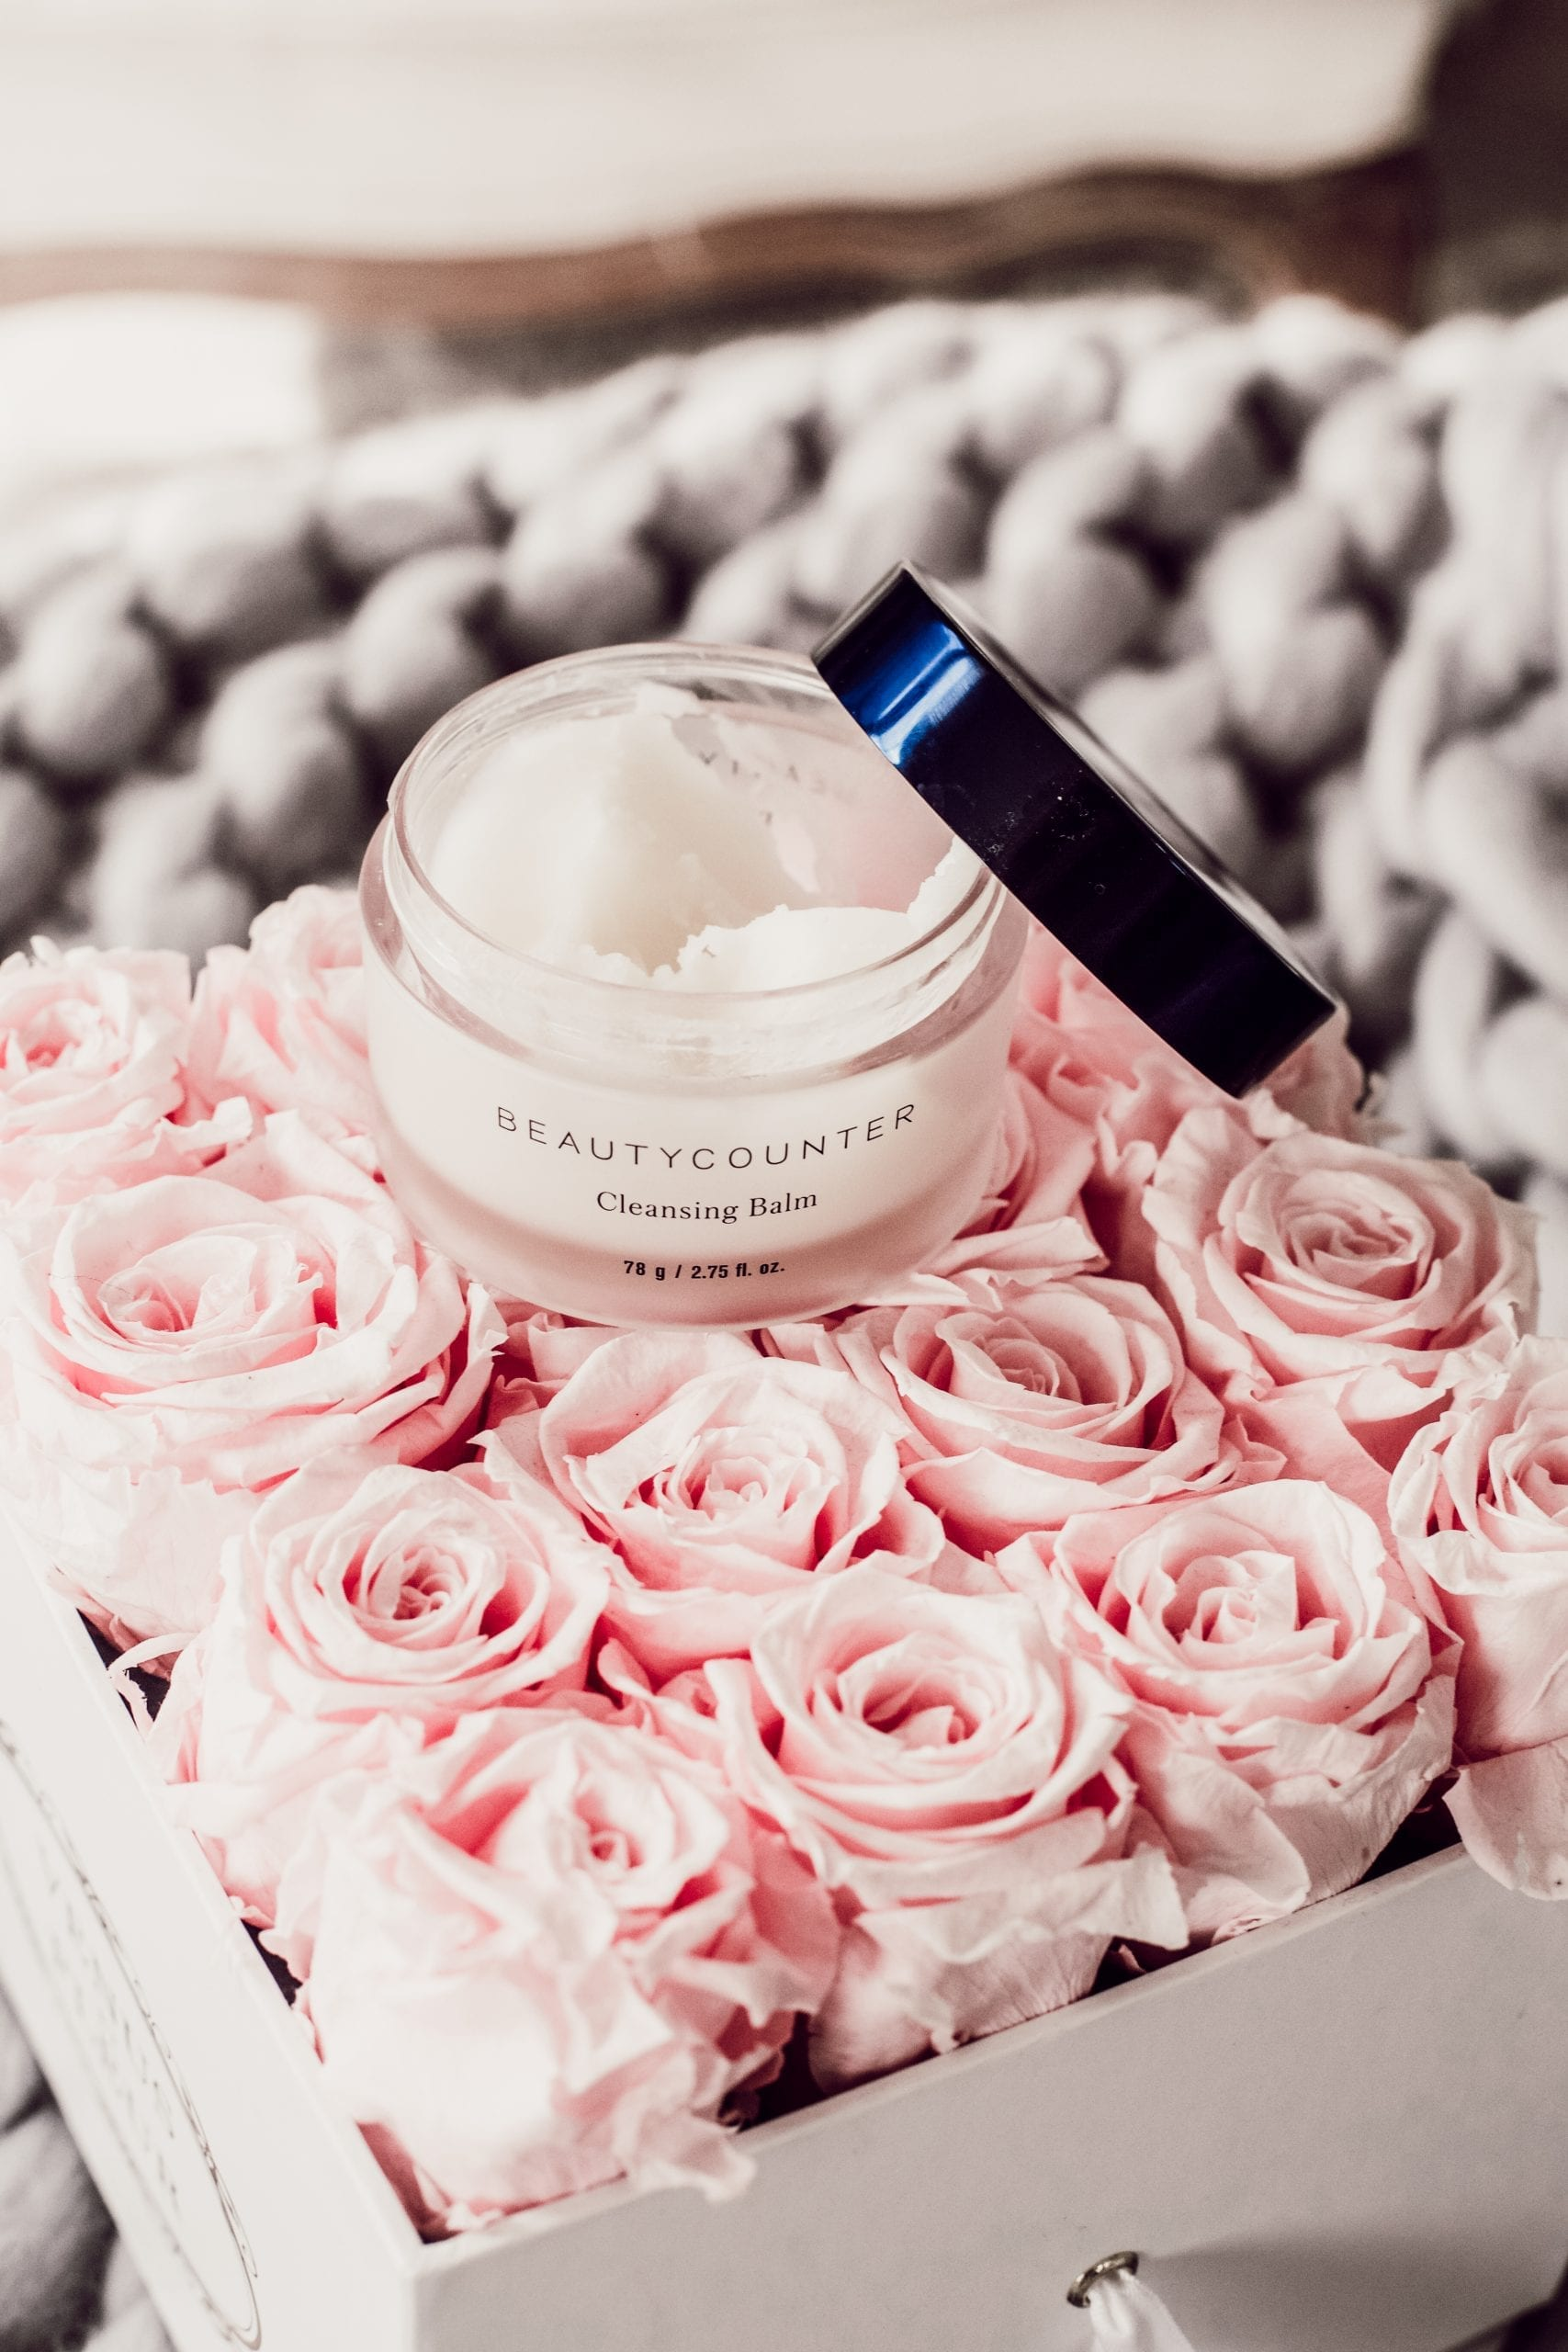 10 Ways to Use Beautycounter Cleansing Balm + Giveaway!